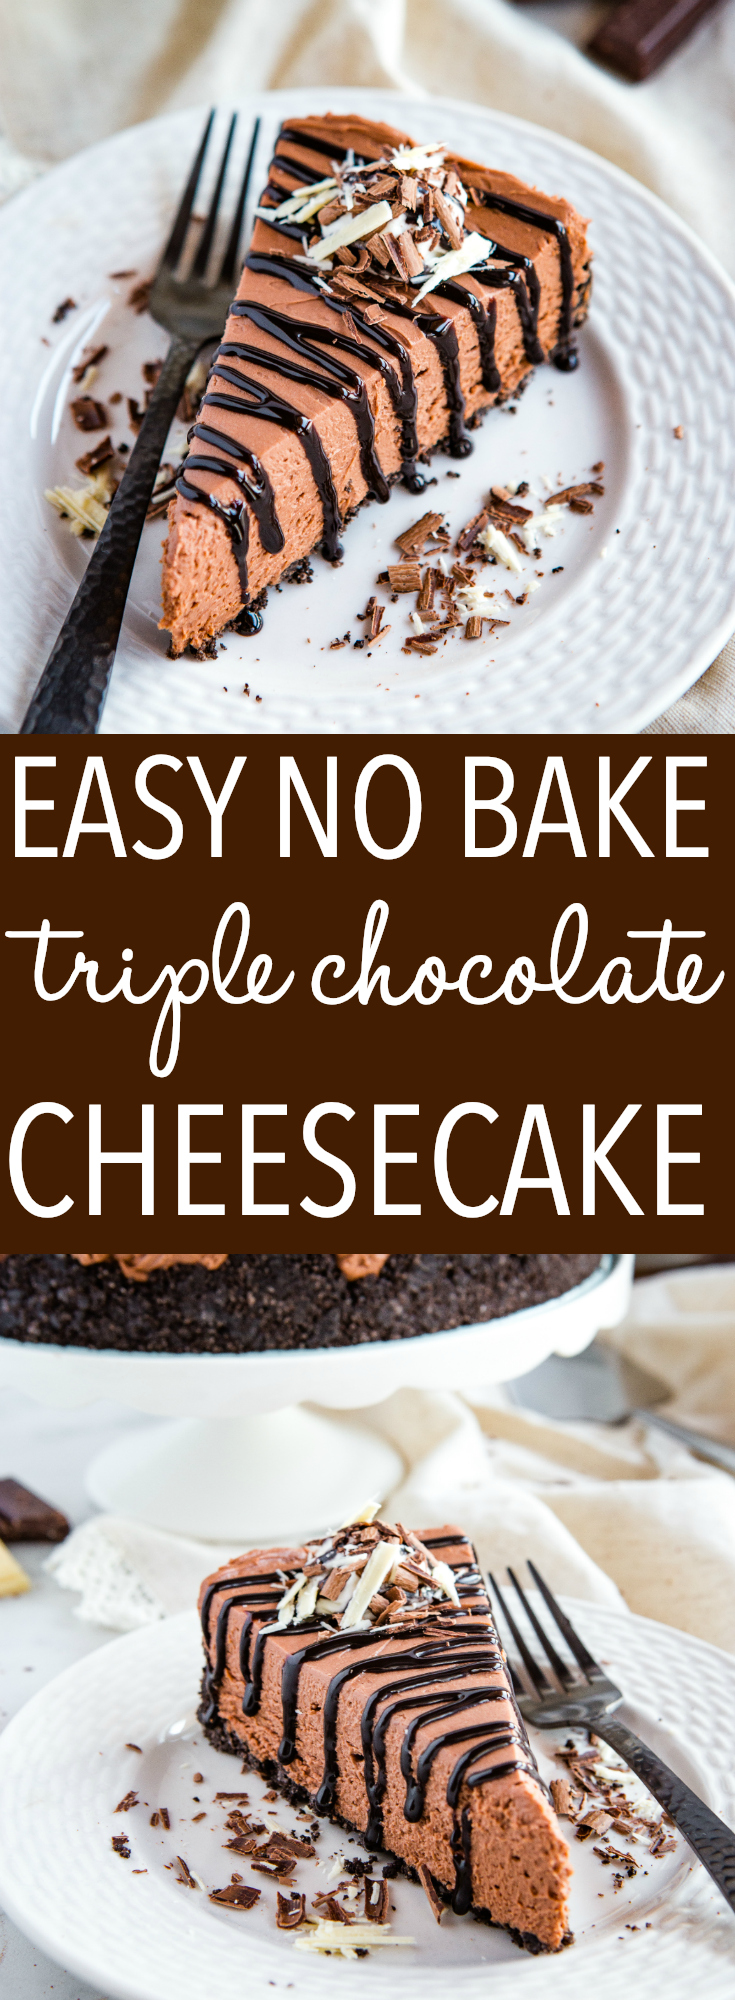 This Easy No Bake Triple Chocolate Cheesecake is the perfect easy dessert for chocolate lovers! It's so creamy and delicious - no baking required! Recipe from thebusybaker.ca! #recipe #cheesecake #triplechocolate #chocolate #cake #baking #nobake #dessert via @busybakerblog